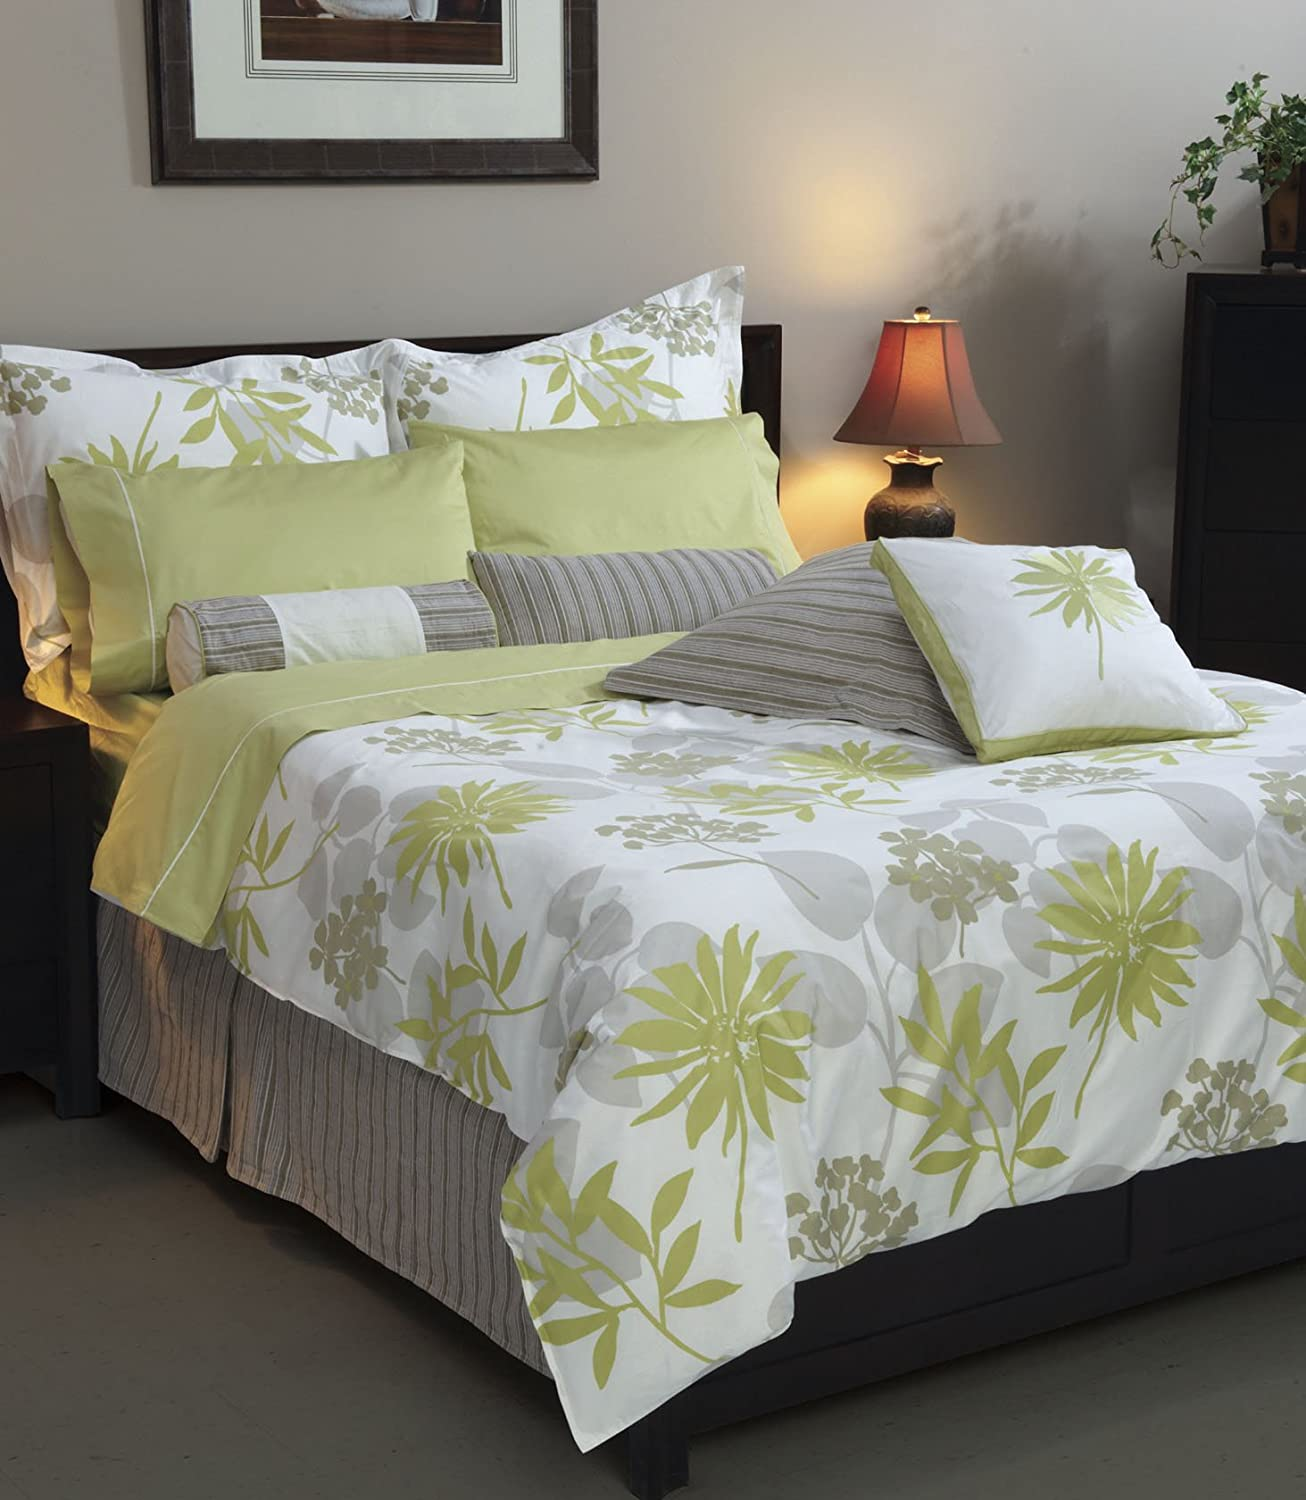 king duvet linen buy on covers yorkshire green discount floral banbury bds set cover